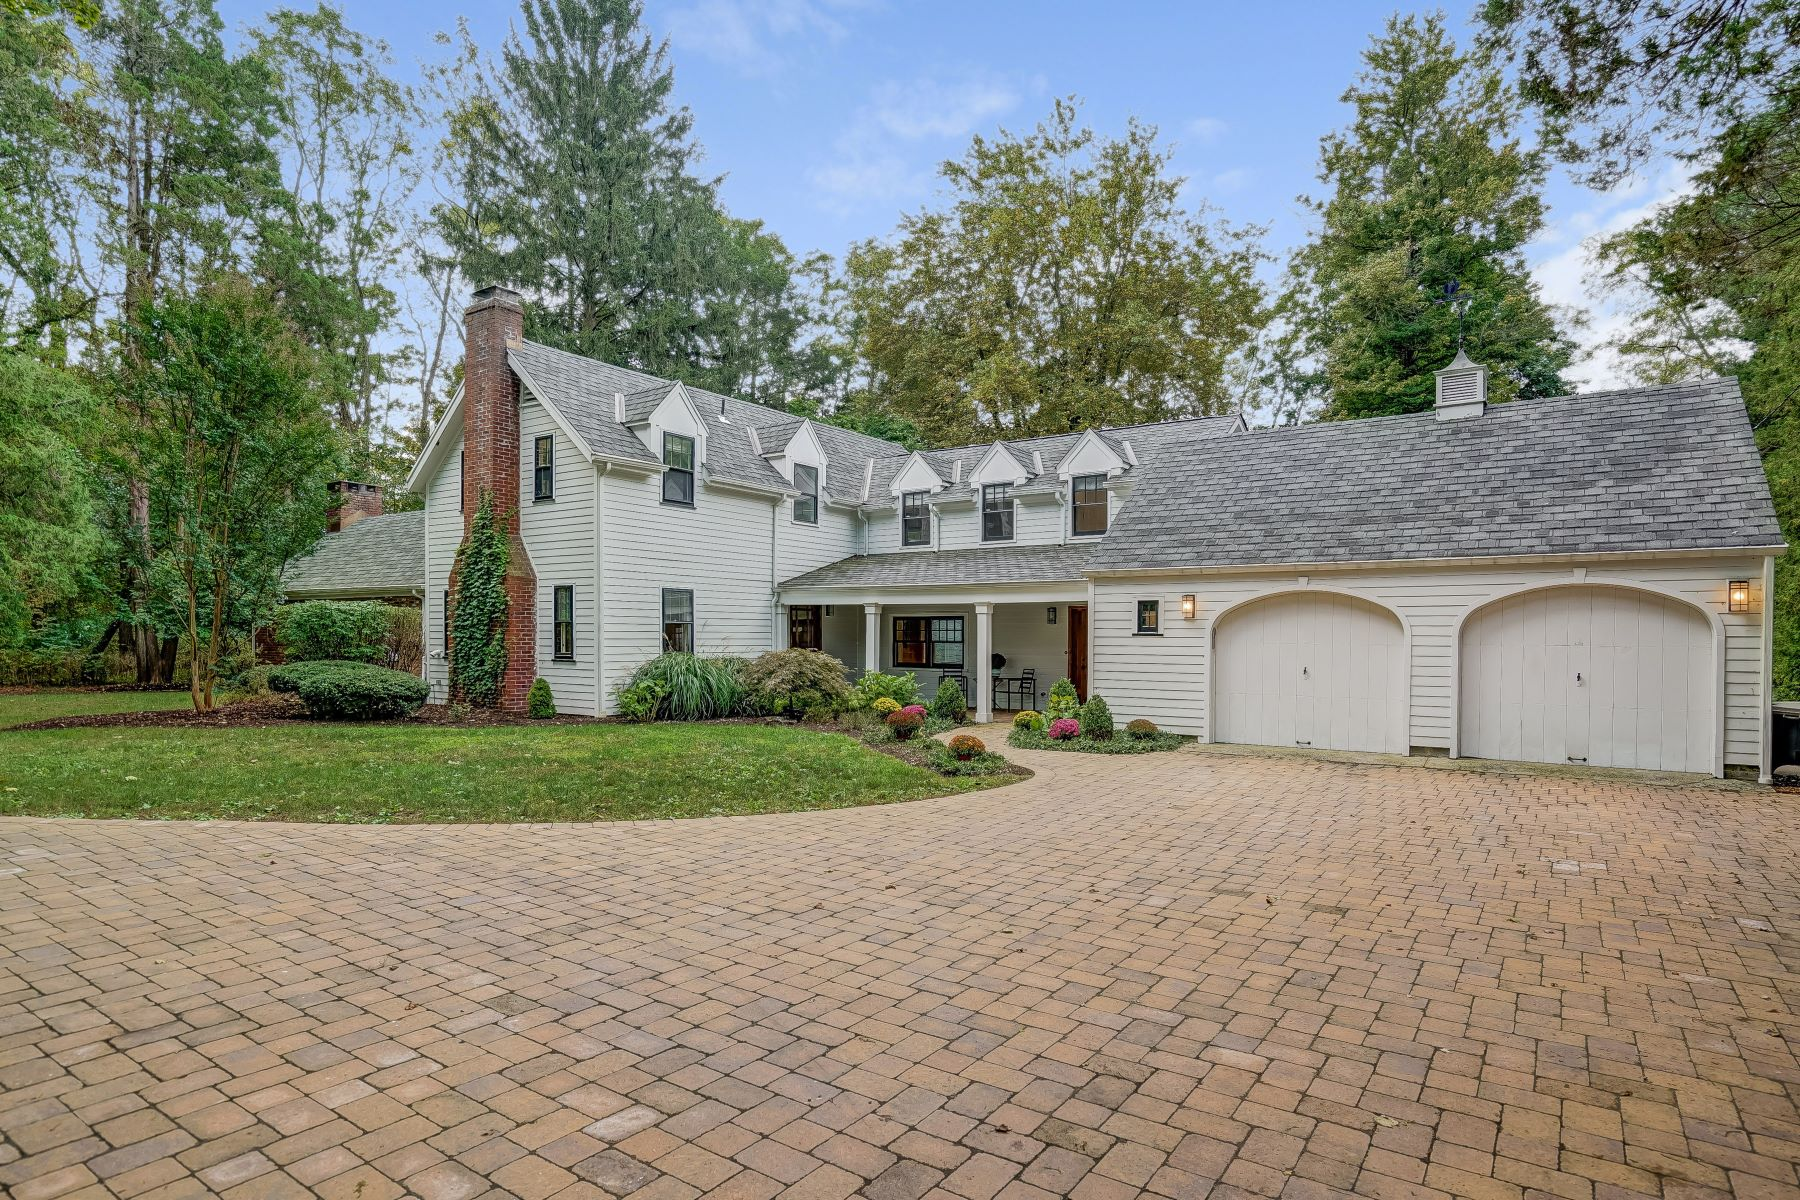 Single Family Home for Sale at Charming Custom Colonial 27 Sunnybrook Road Basking Ridge, New Jersey 07920 United States